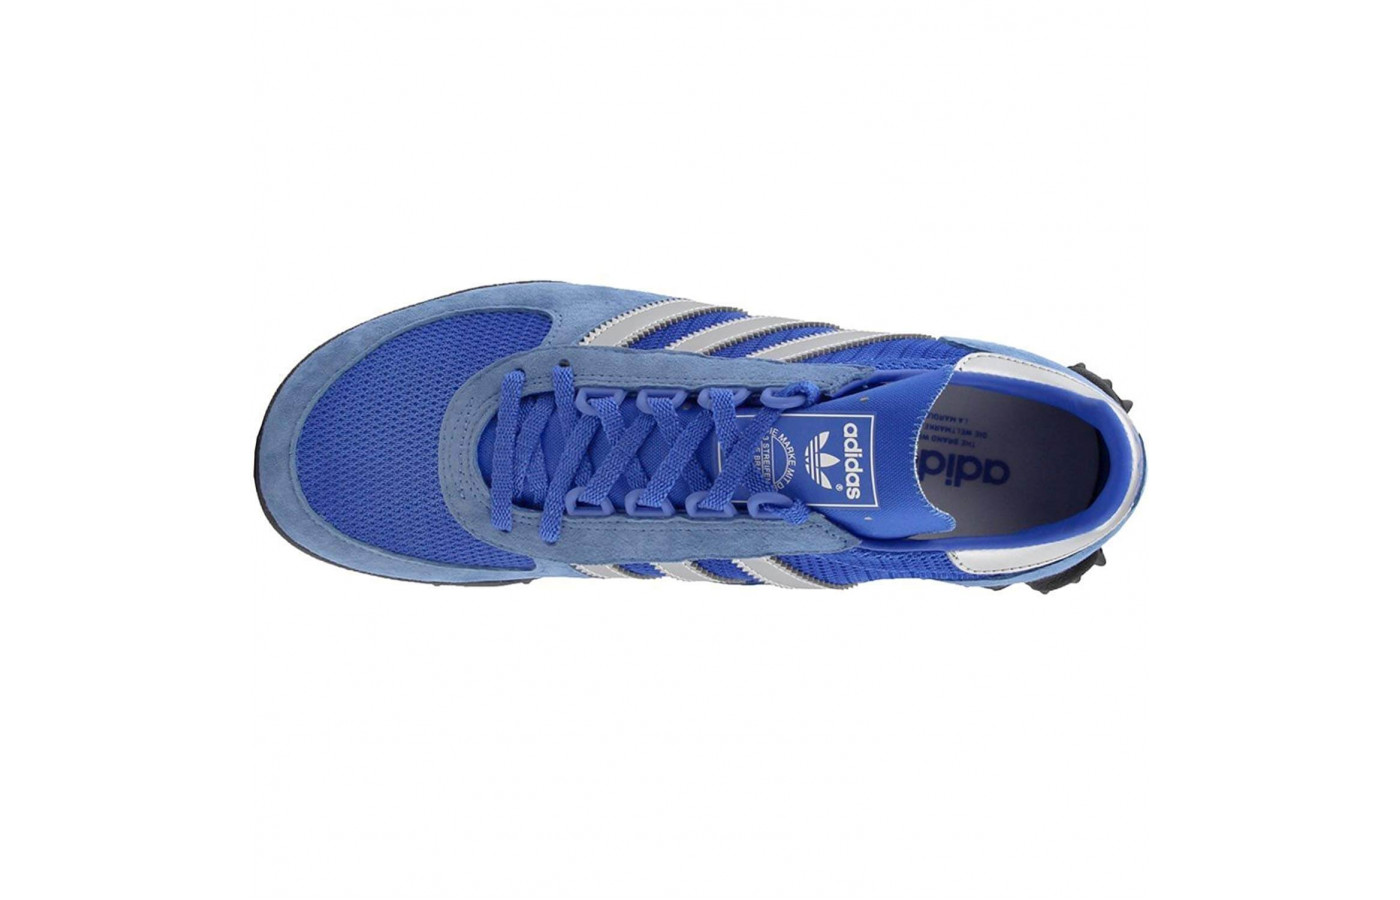 Adidas Marathon TR · Fresh sneakers and vintage trainers. IN